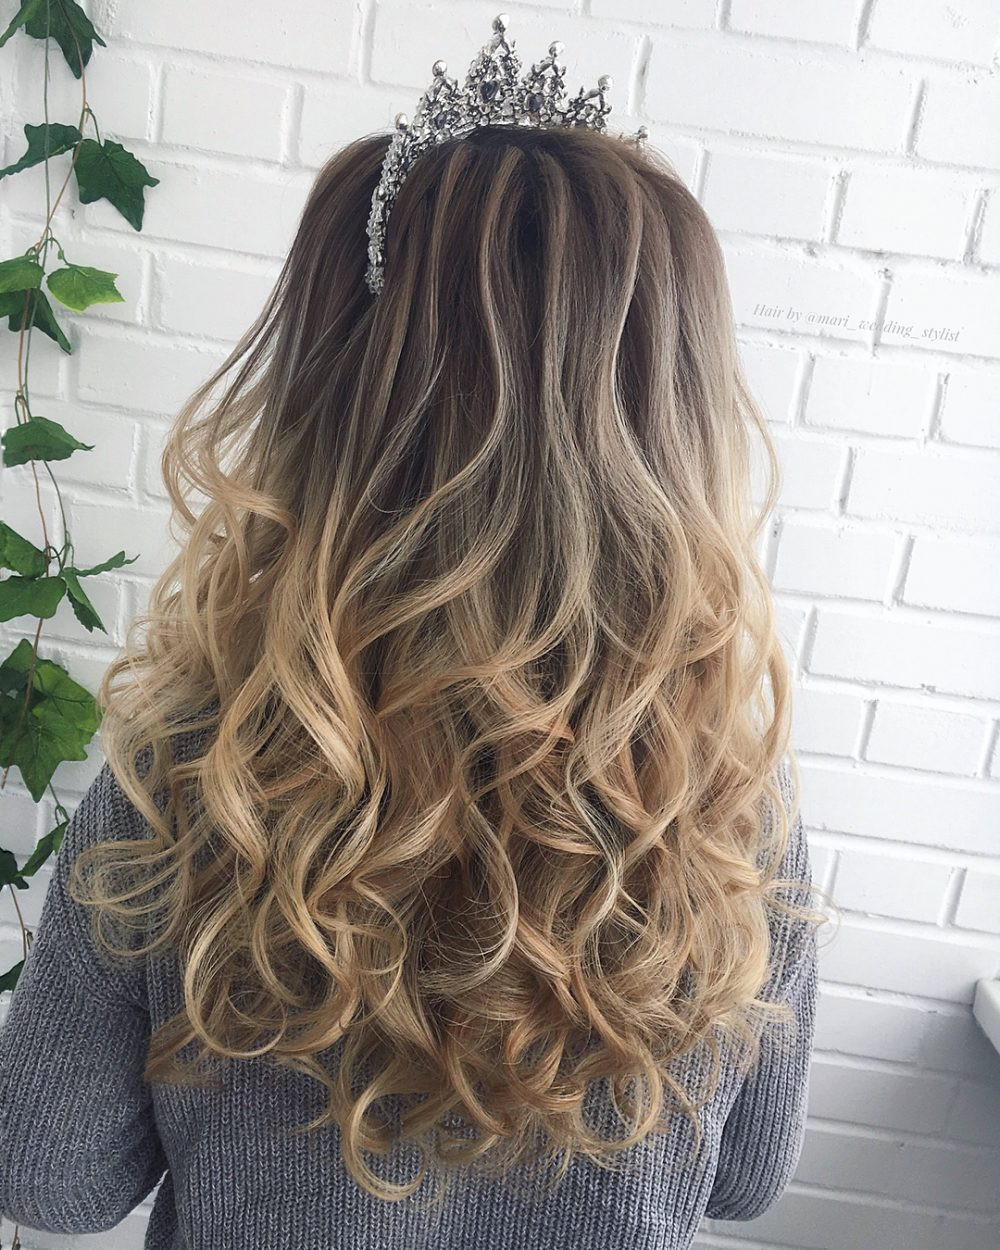 Best ideas about Down Prom Hairstyles . Save or Pin 22 Perfectly Gorgeous Down Hairstyles for Prom Now.